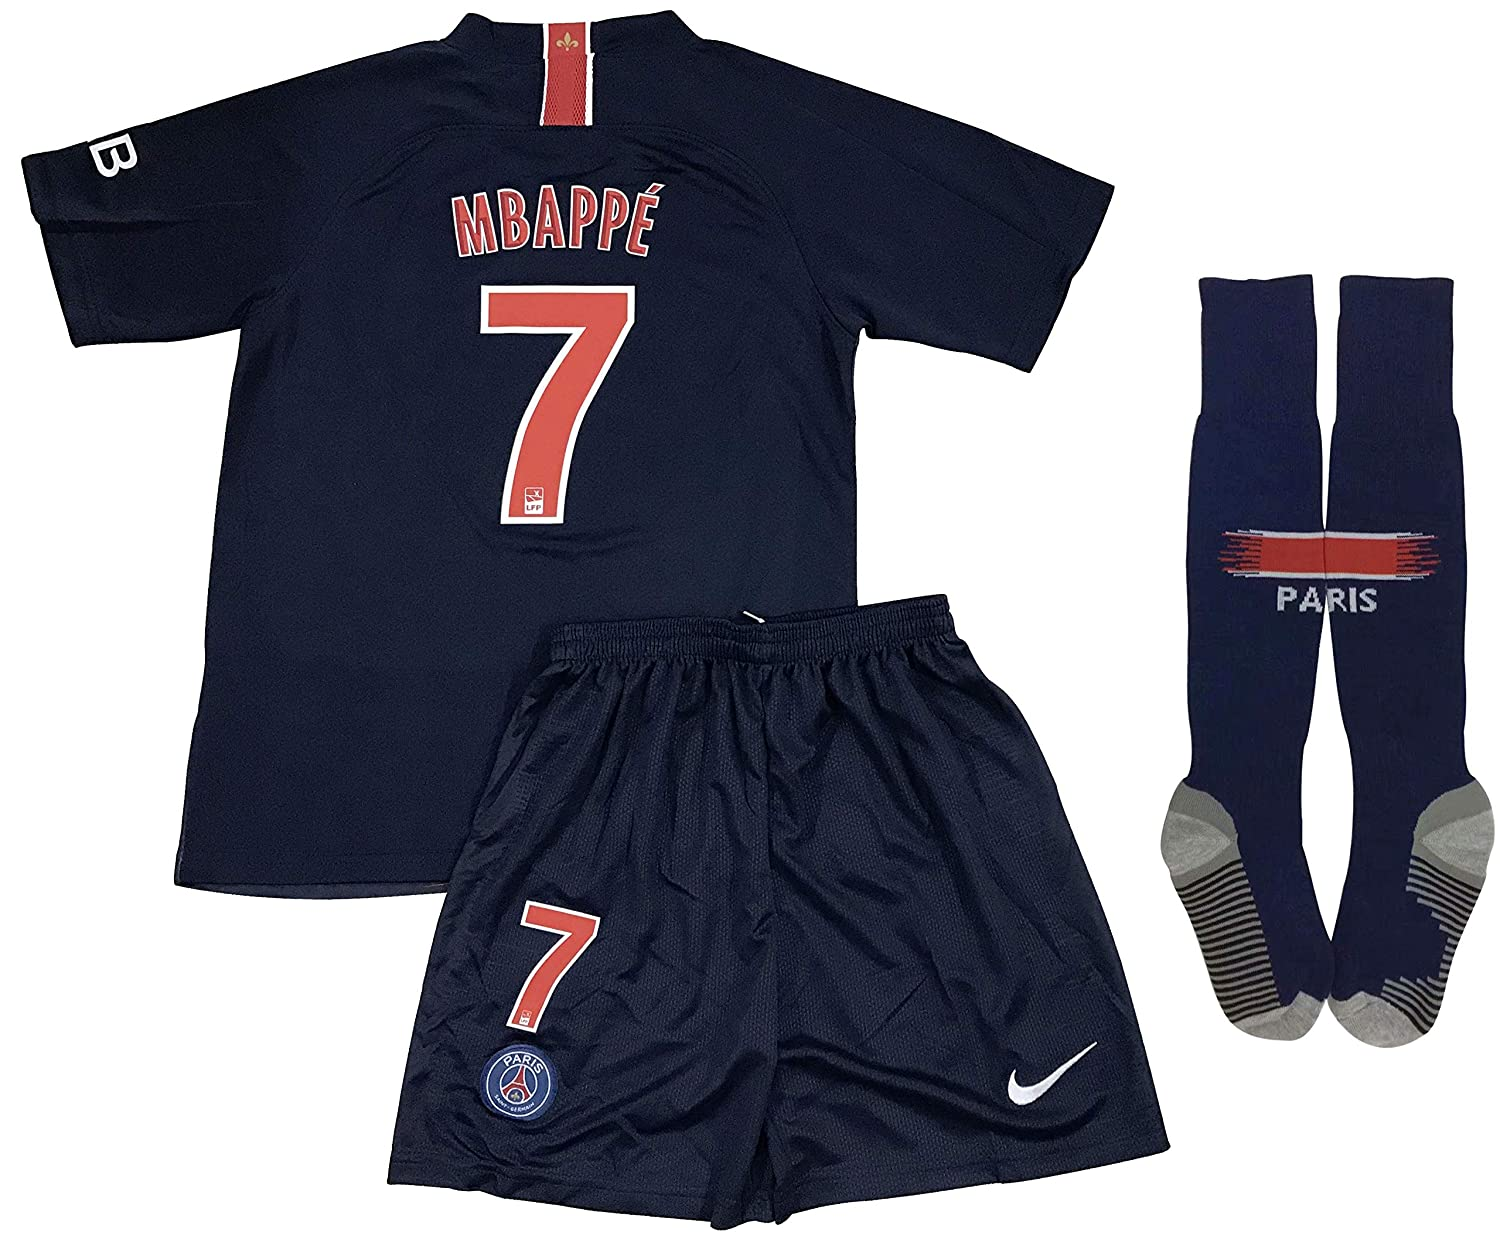 256888f4 Amazon.com: New #7 Mbappe PSG 2018/2019 Home Jersey Shorts & Socks for Kids/ Youths: Clothing